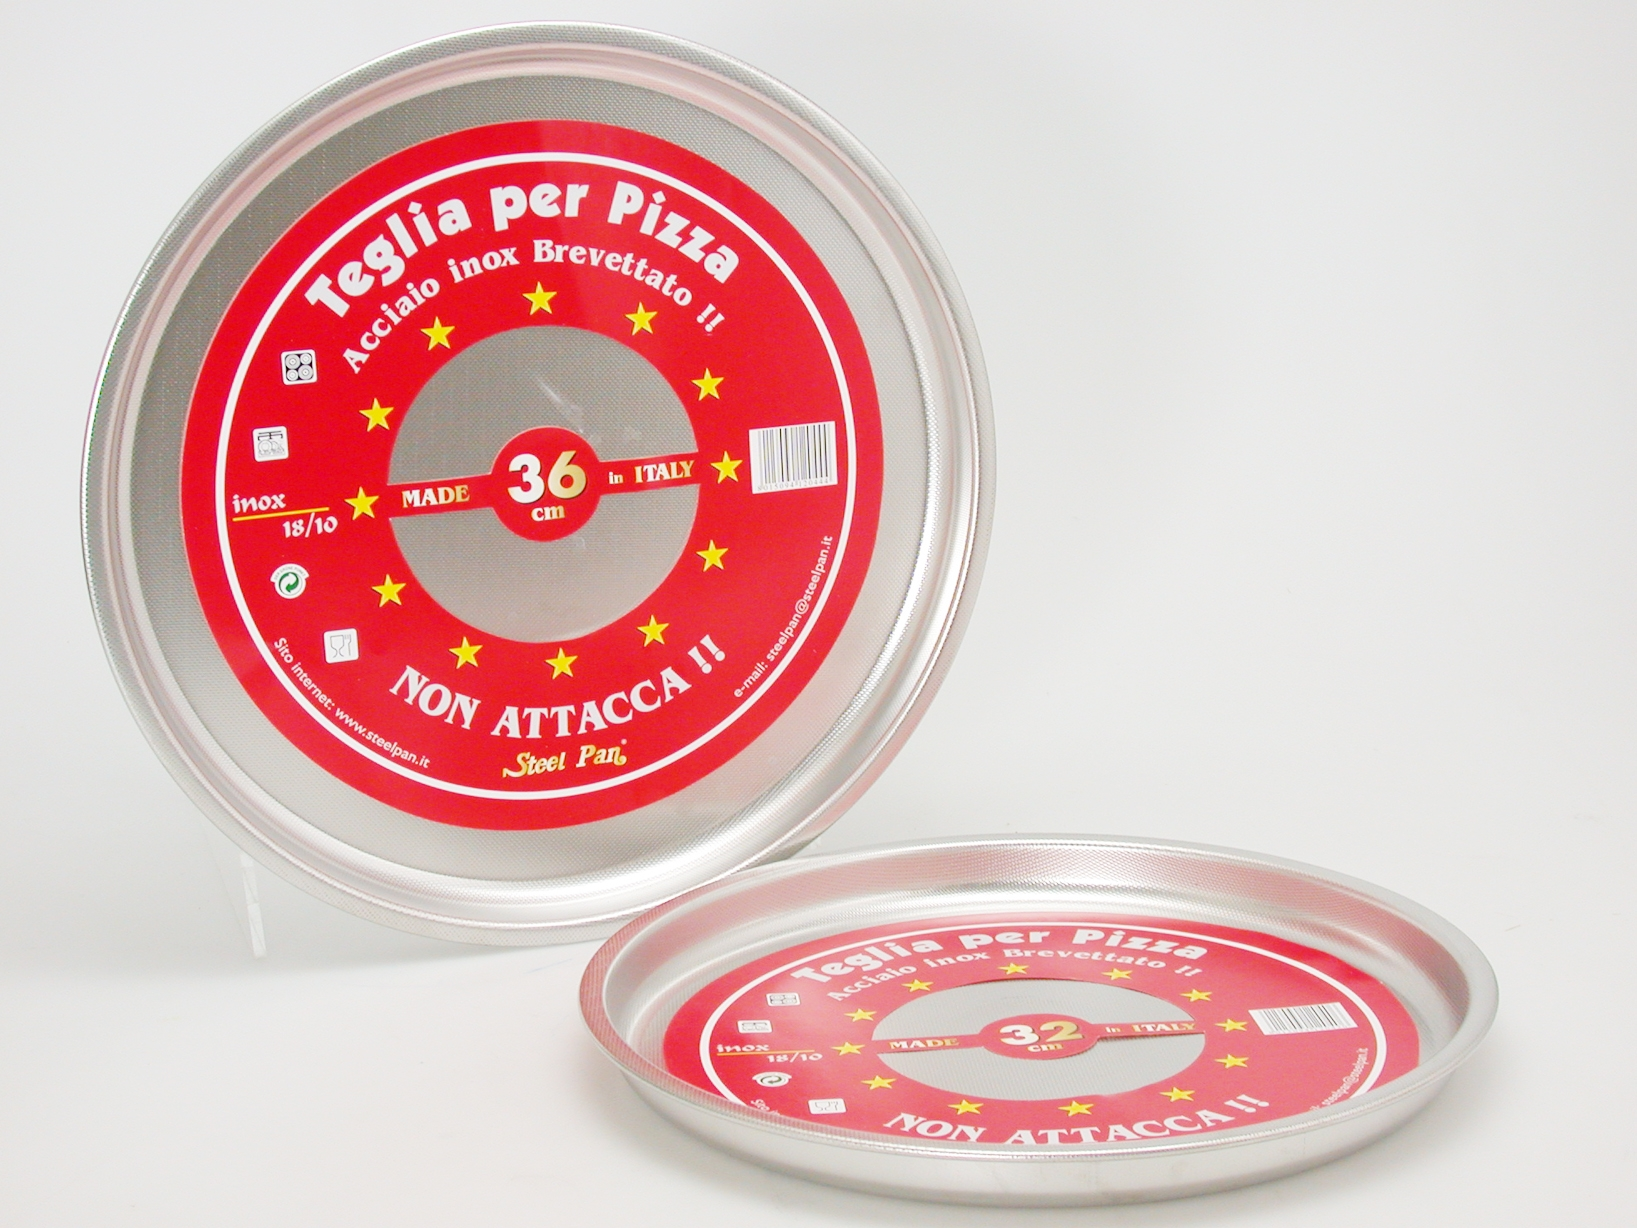 Acquista Teglia Pizza Tondo Nonstick 28 17514021 | Glooke.com